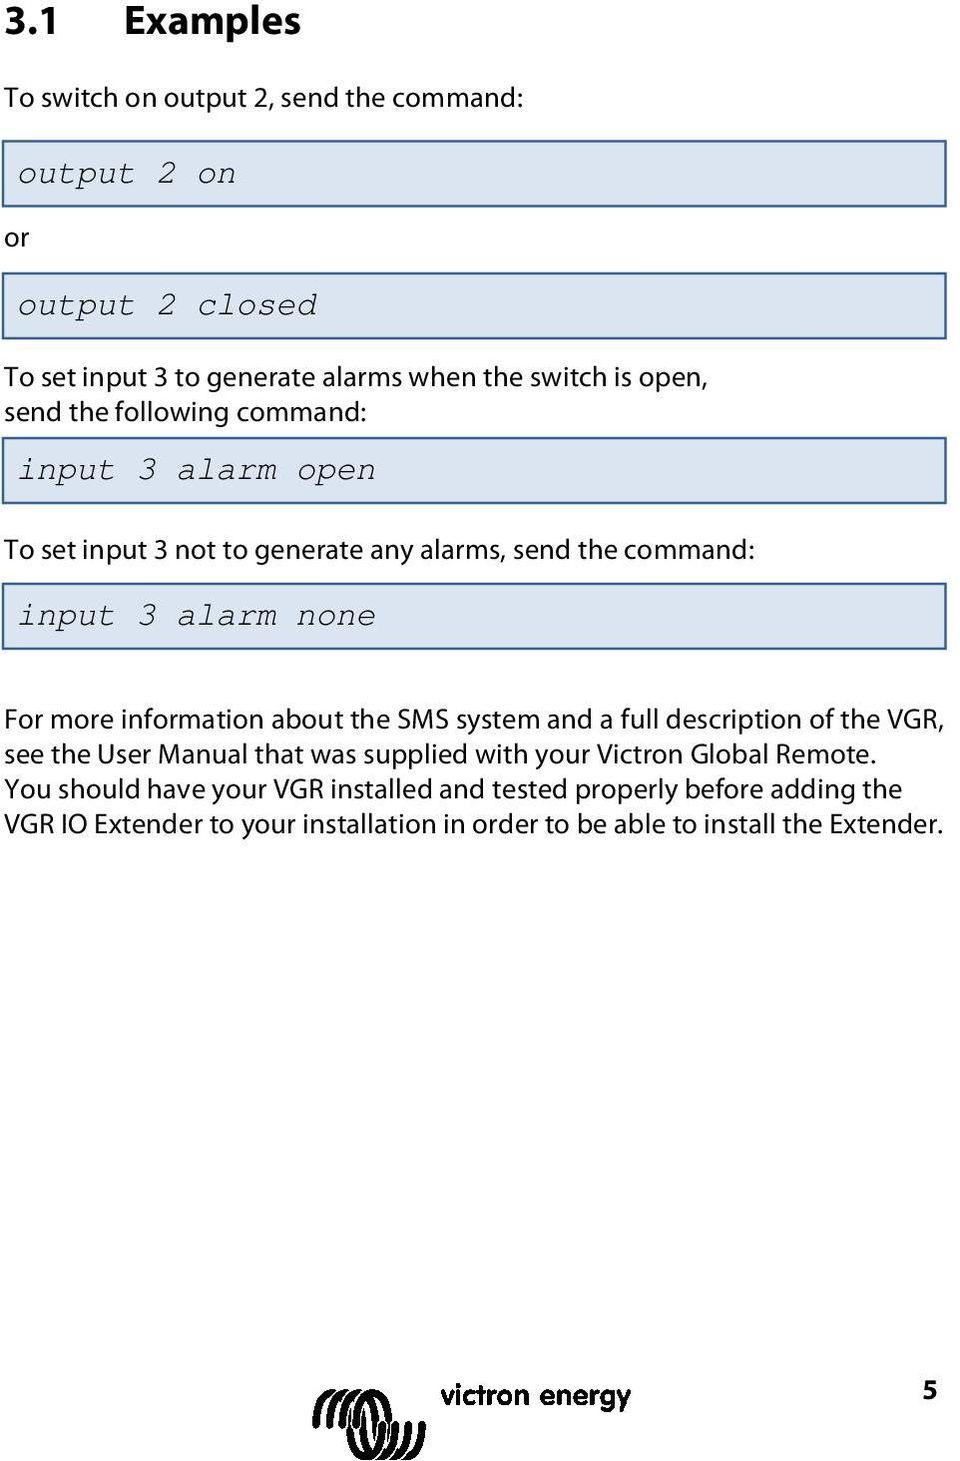 information about the SMS system and a full description of the VGR, see the User Manual that was supplied with your Victron Global Remote.